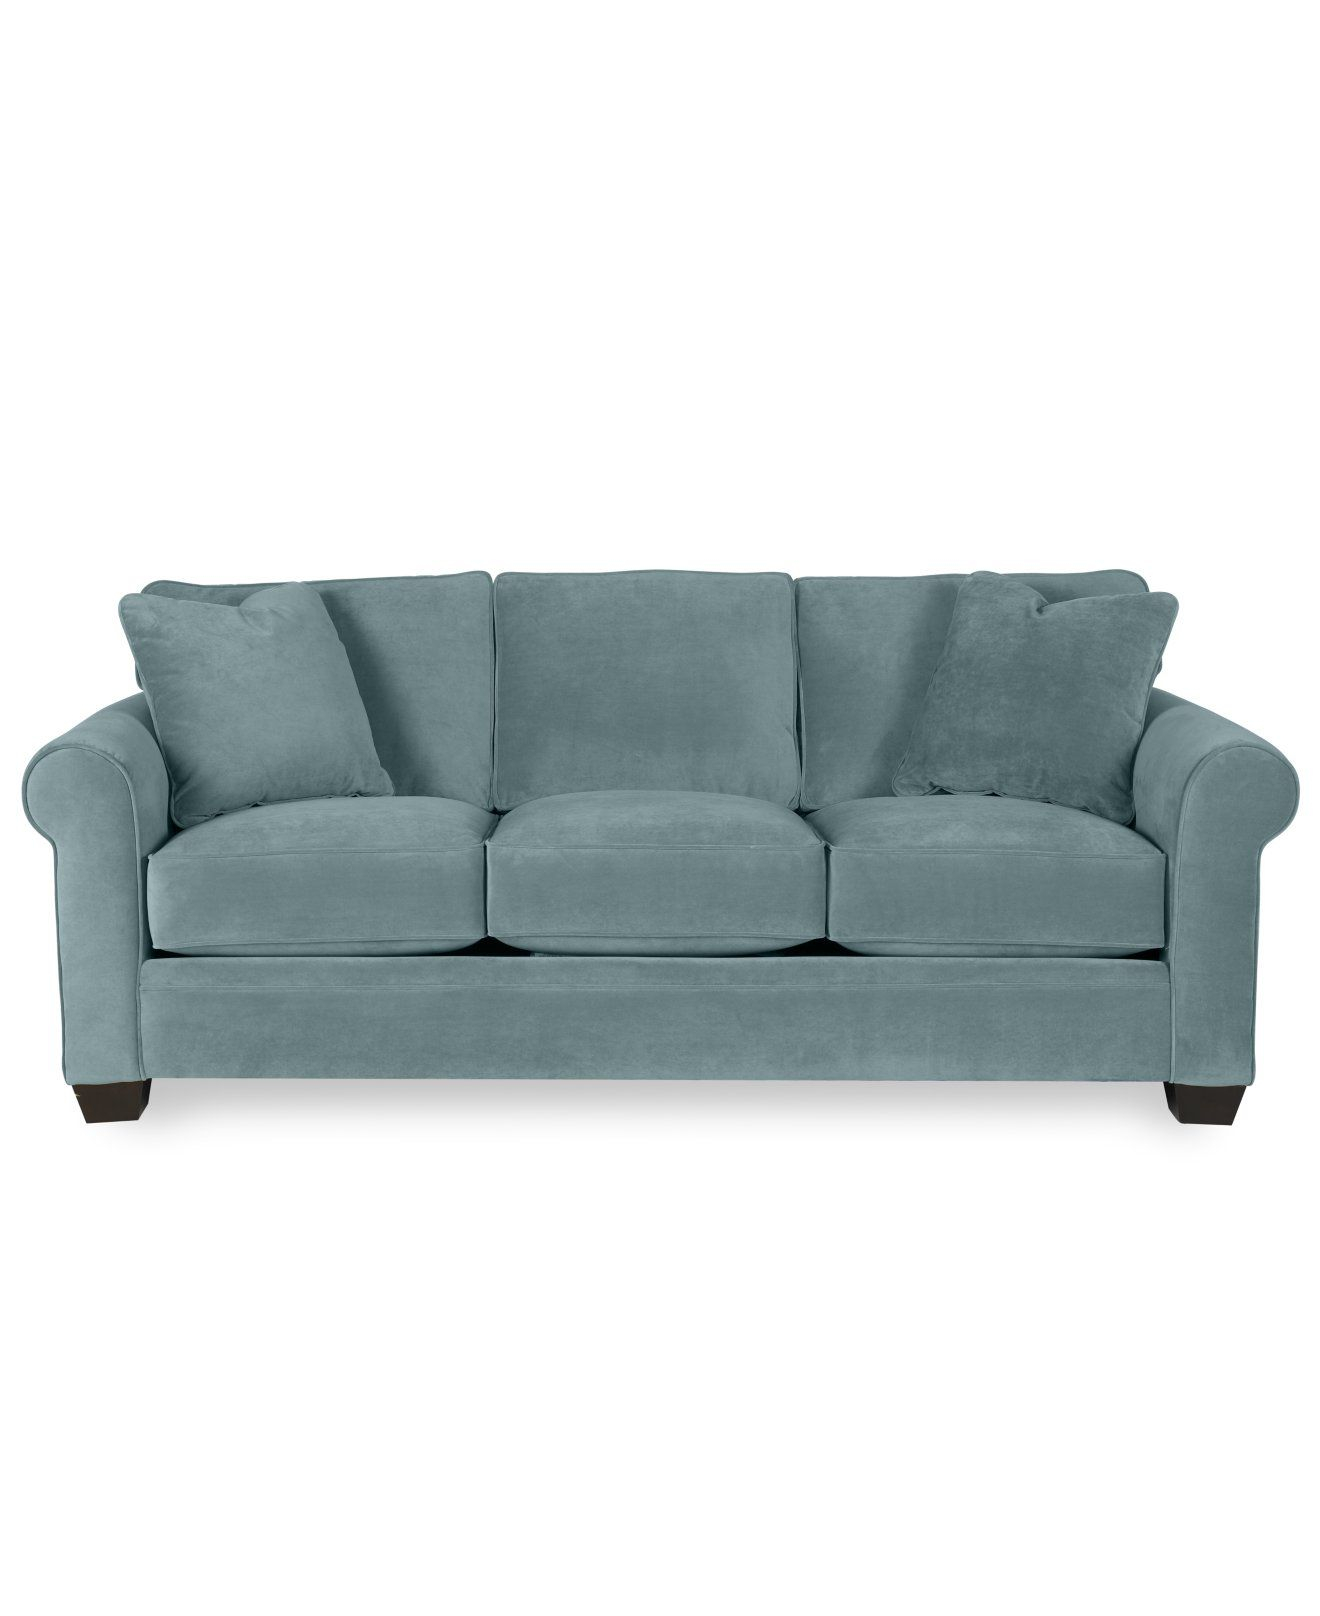 Remo Fabric Sofa Bed Queen Sleeper Custom Colors Couches pertaining to dimensions 1320 X 1616